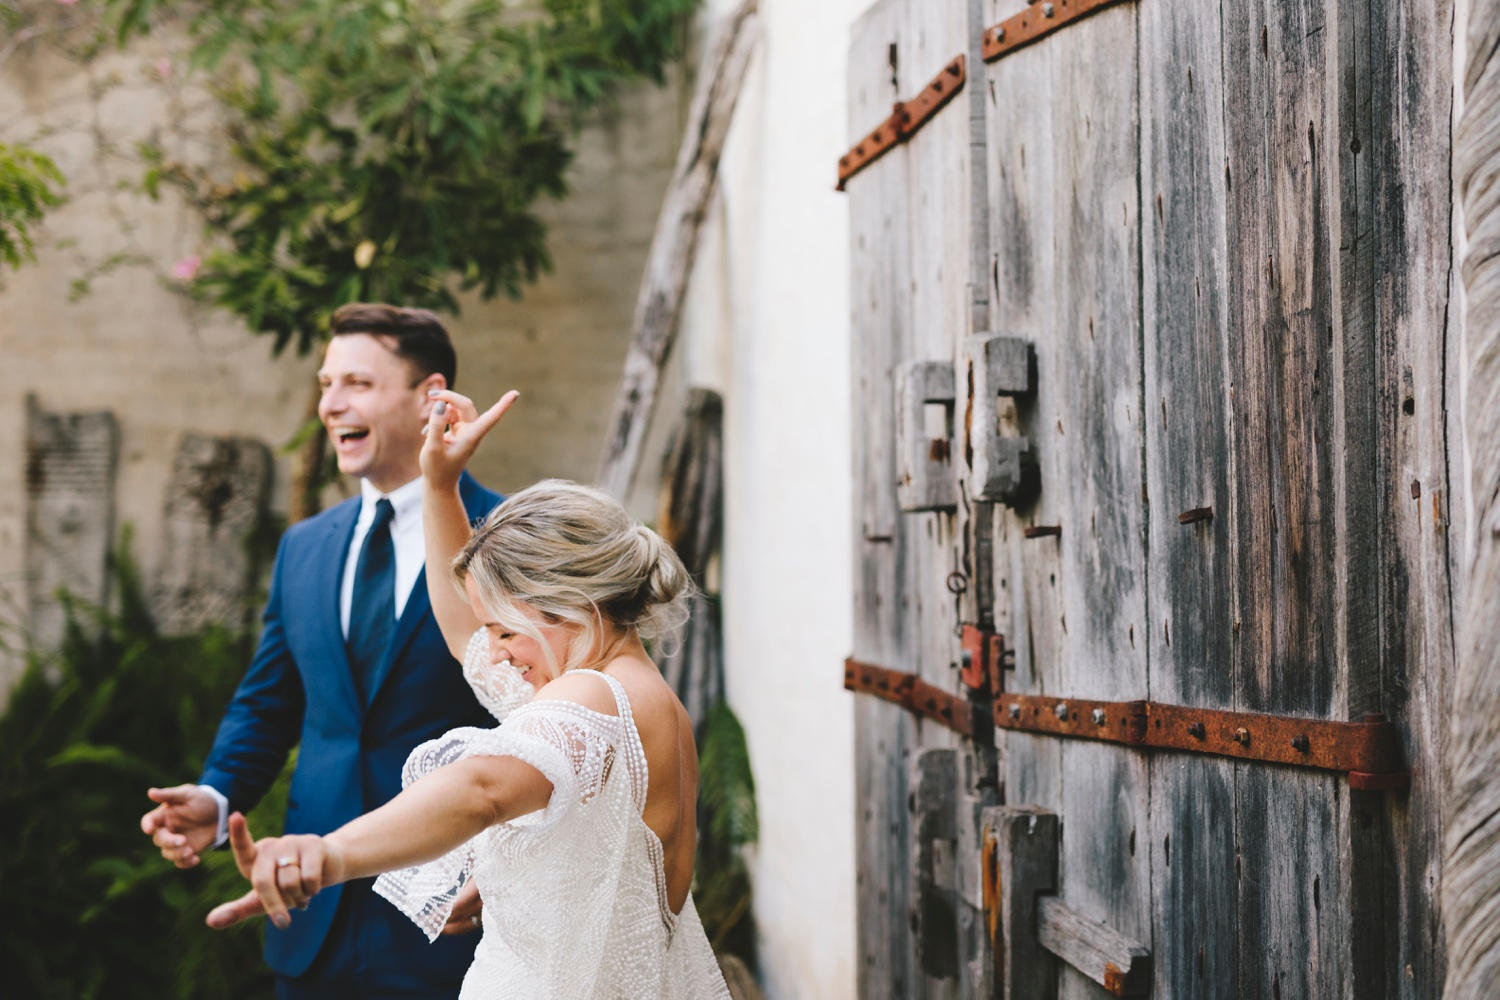 charlie_ray_photography_runaway_romance_elopement_emily_moon_plett_simple_boho_wedding_south_africa_bohemium_0078.jpg